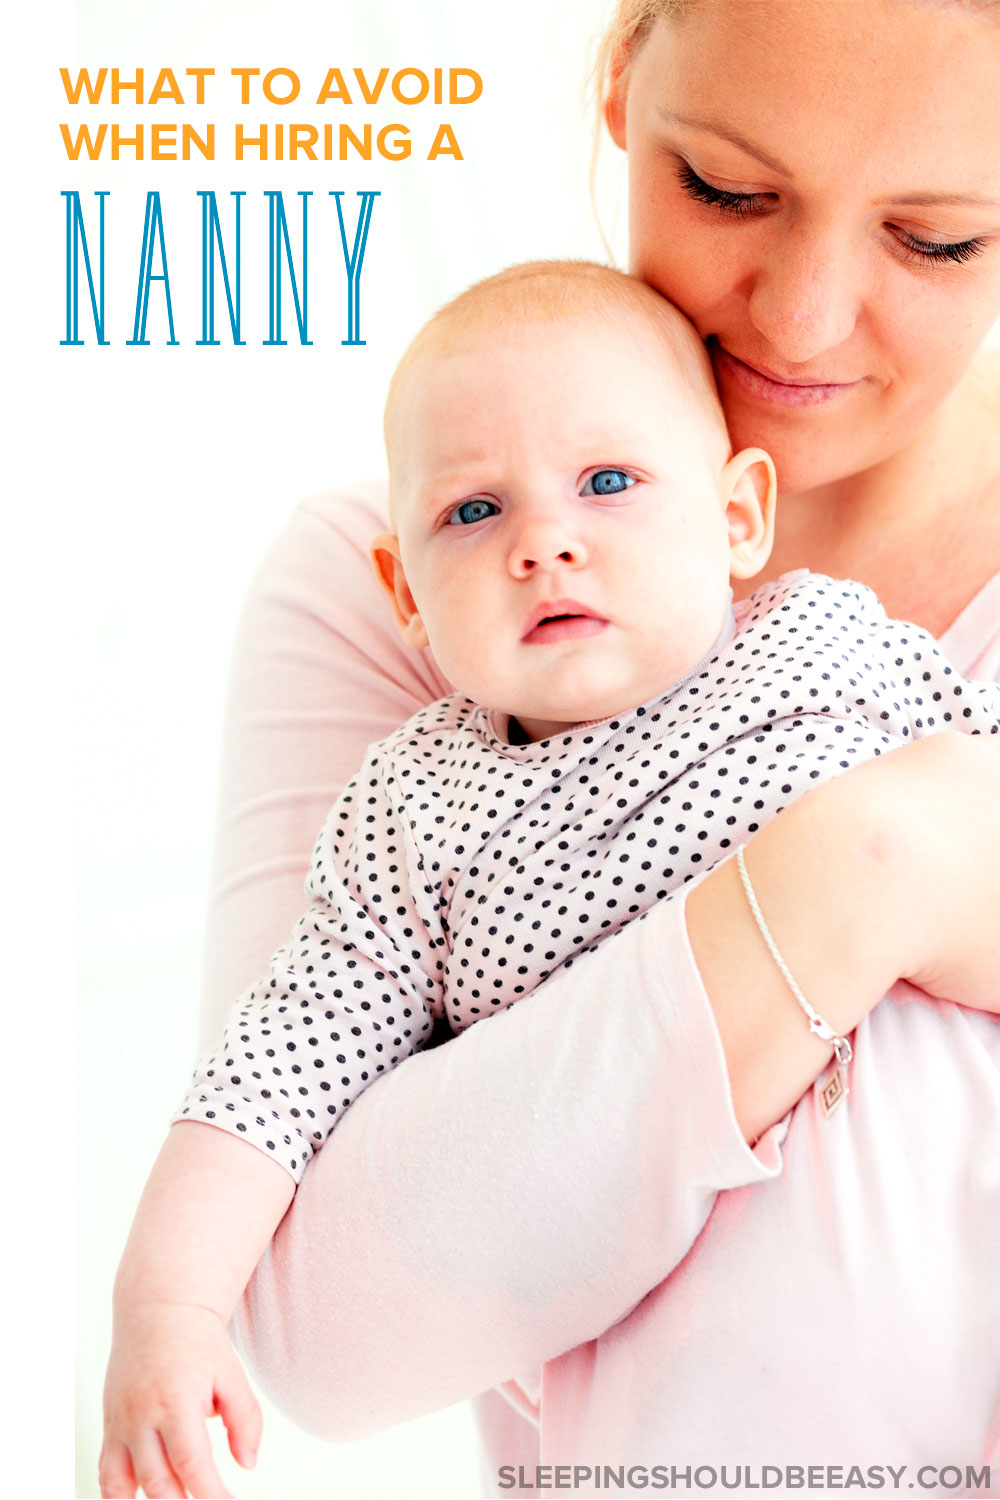 Hiring a nanny can be a stressful experience. Here's what to avoid when hiring a nanny, interviewing childcare providers and making your selection.